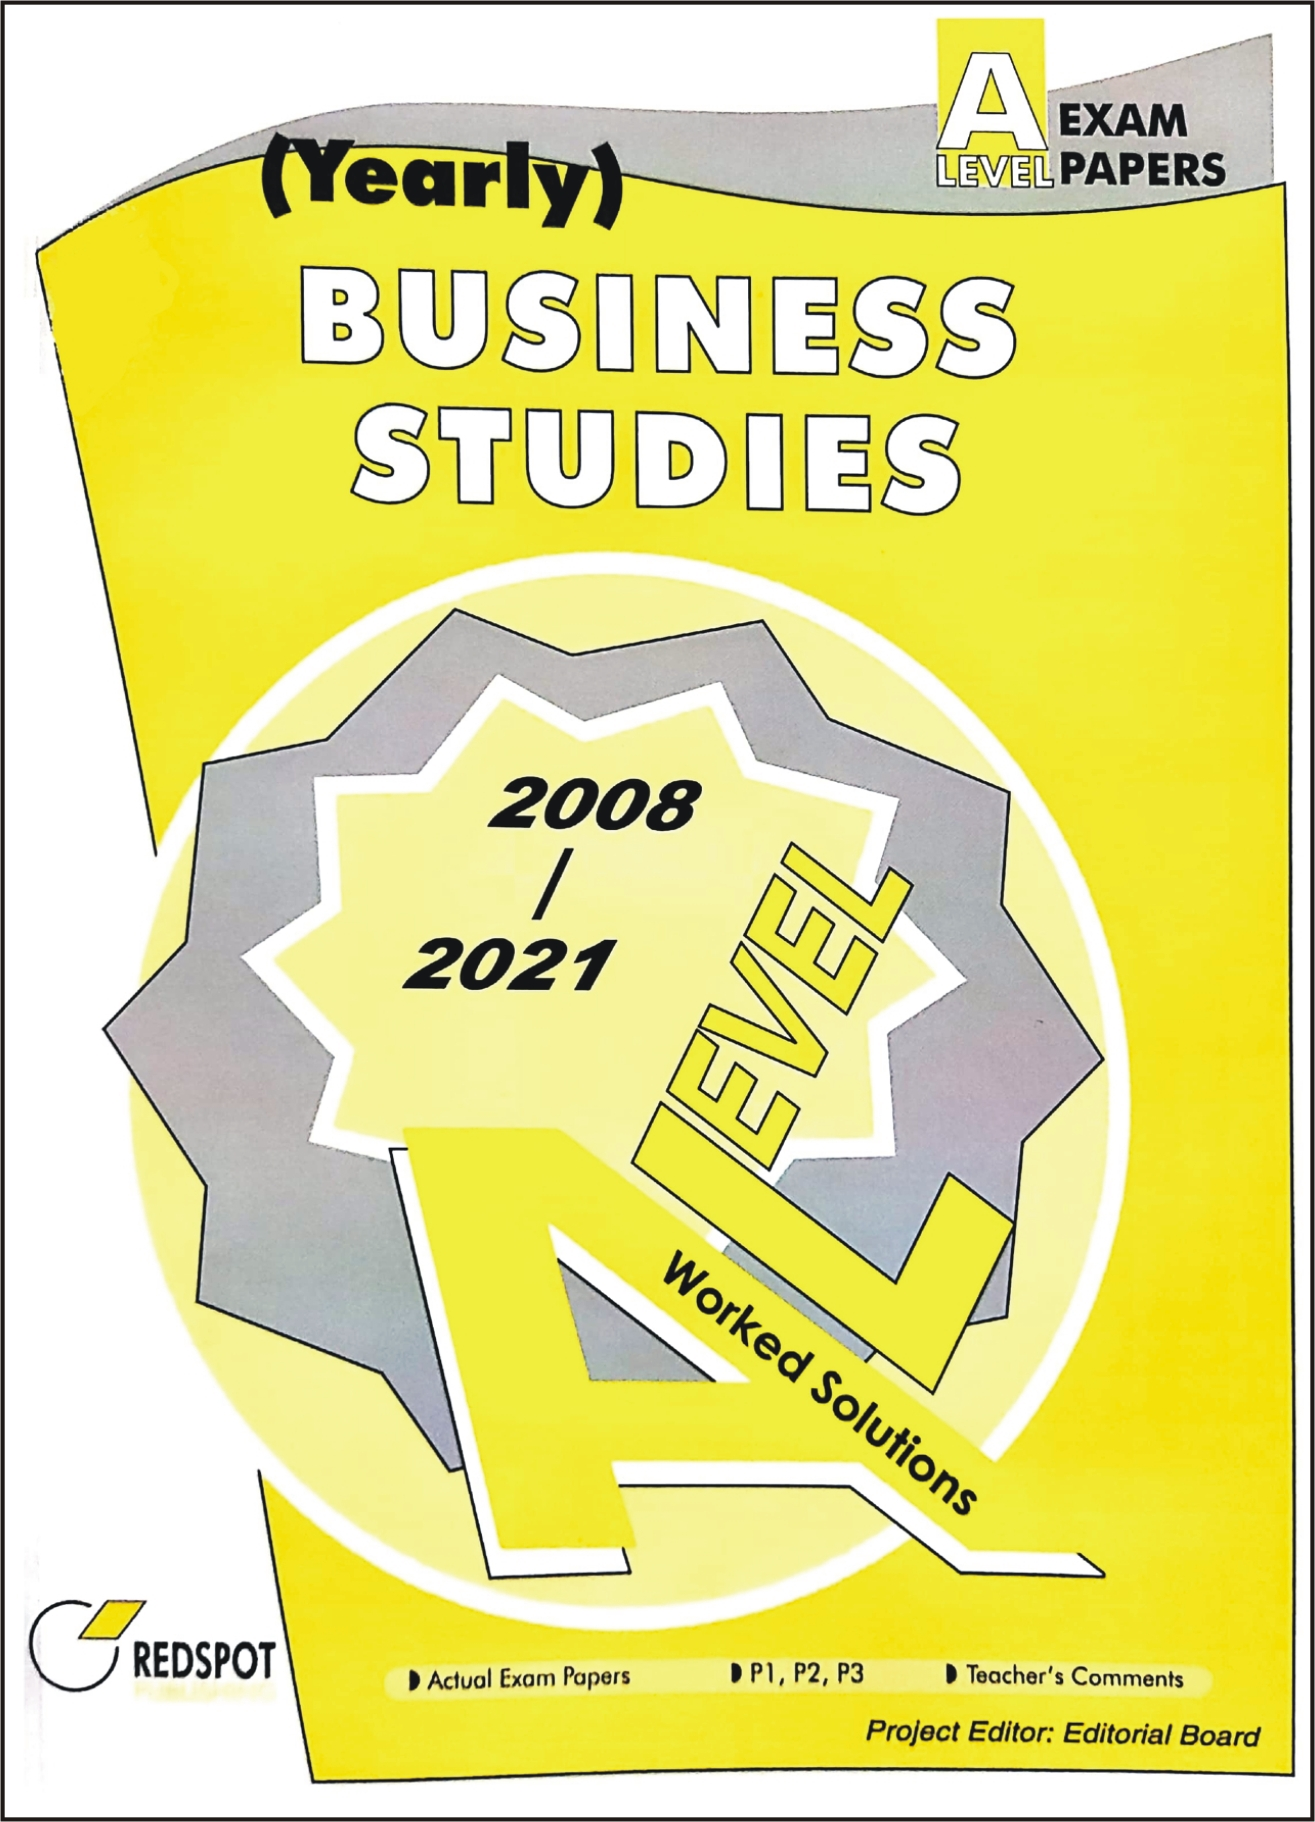 essay for business studies A strong business school application essay will make you stand out from the crowd you want to get into a top business school, but you need to stand out from the tens of thousands of other impressive applicants.